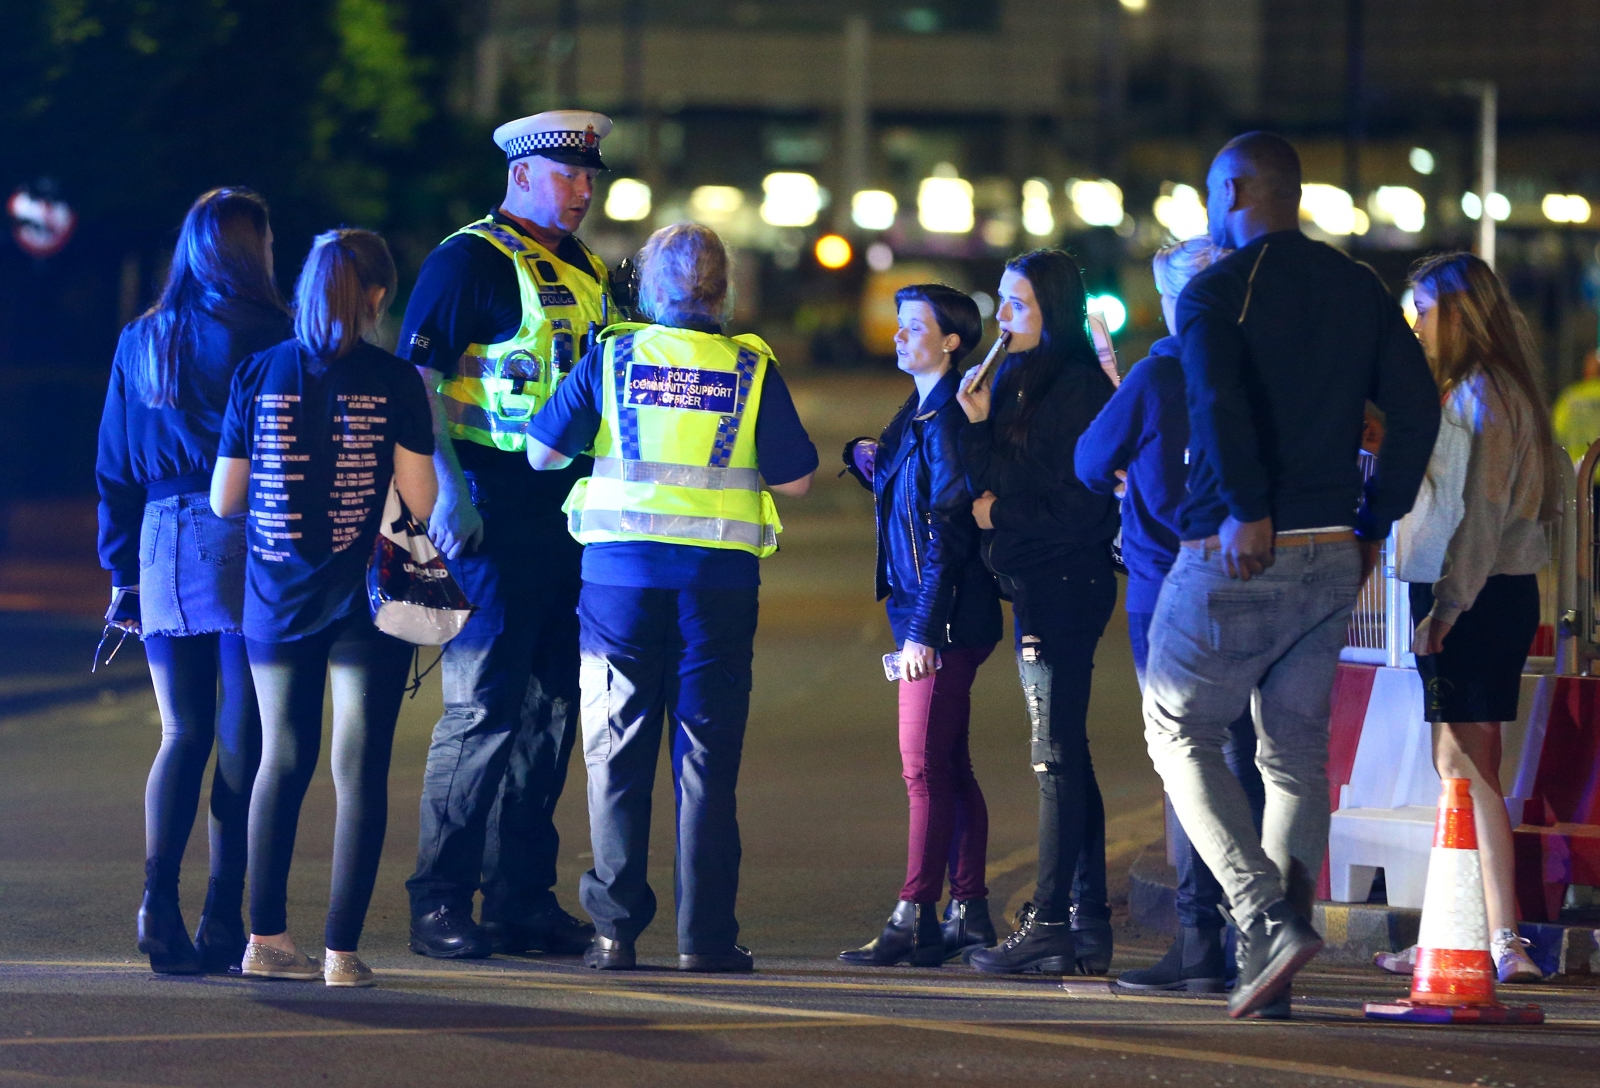 County mum confirmed as killed in Manchester bomb attack